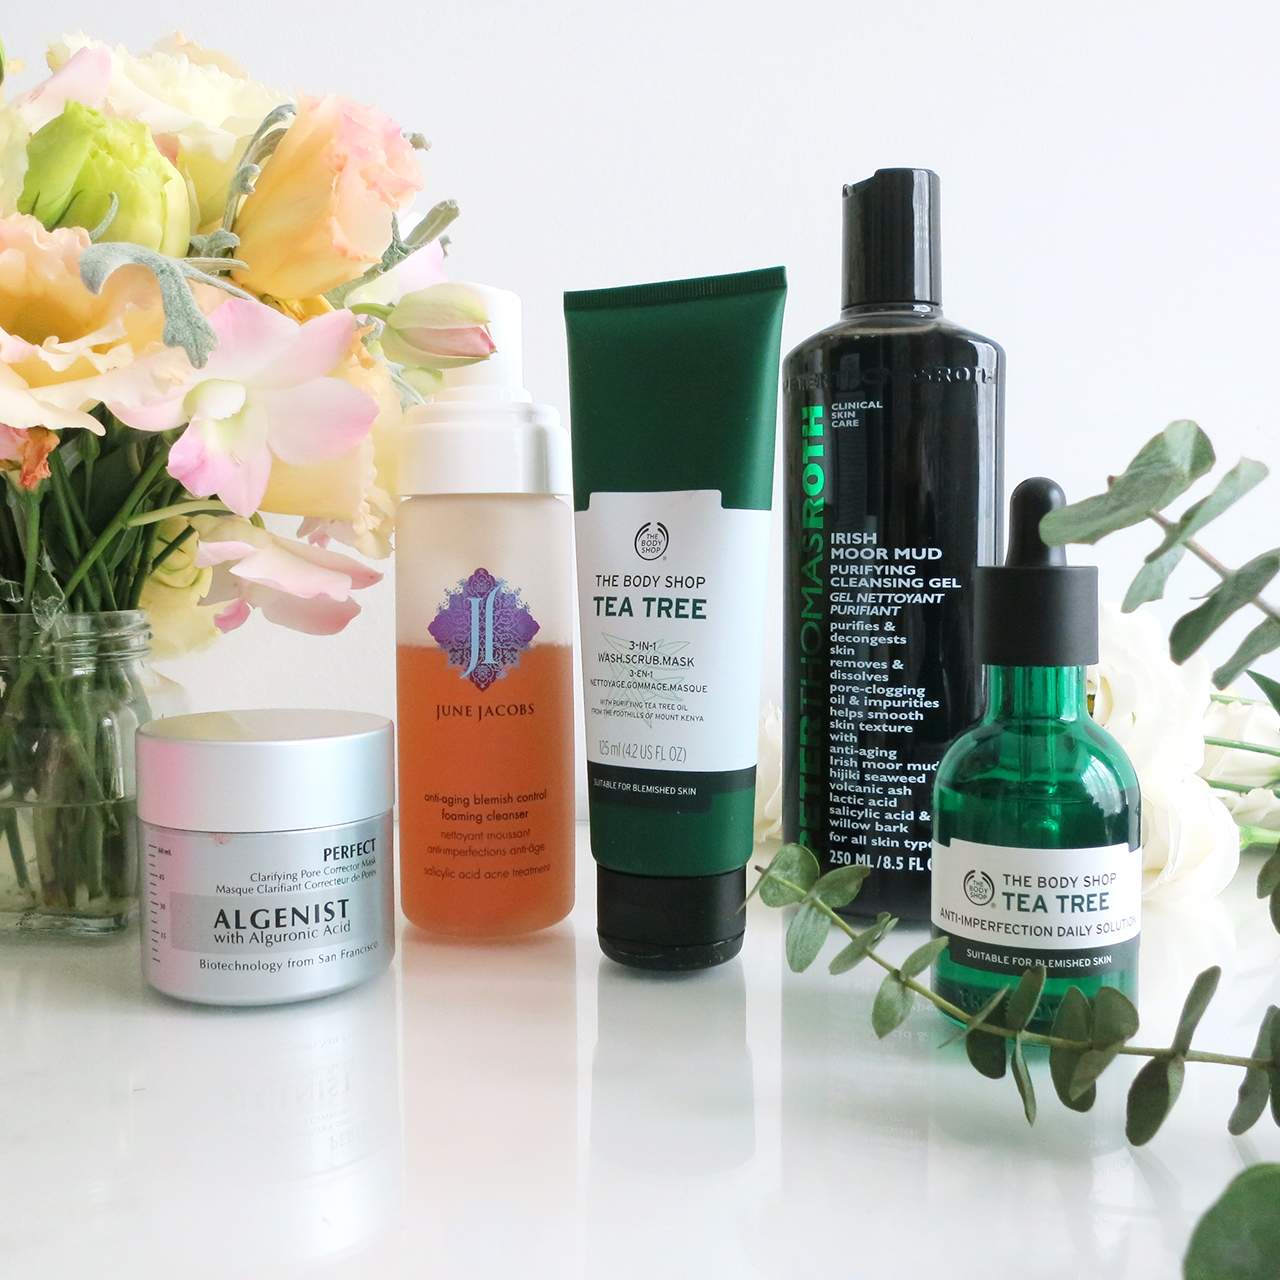 5 Basic Skincare Products for Adult Acne